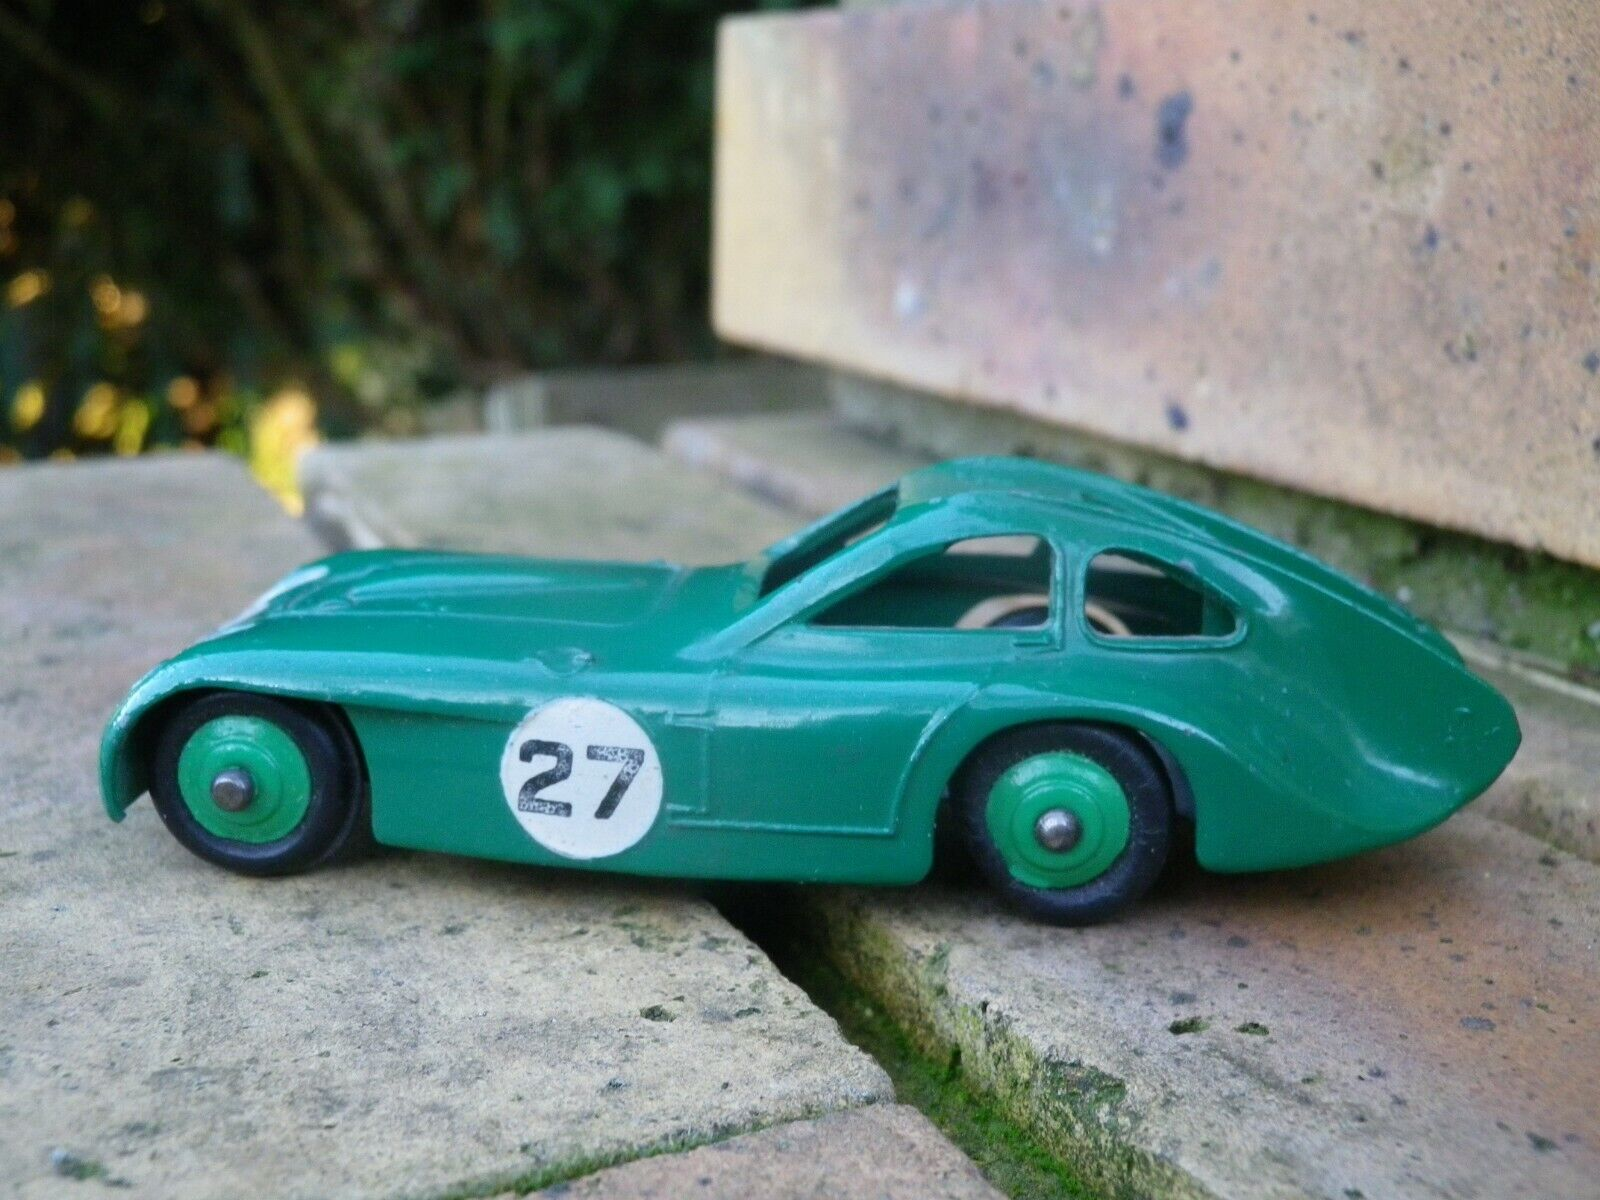 DINKY TOYS 163 BRISTOL 450 MADE IN ENGLAND 1955 comme neuf, sans boite